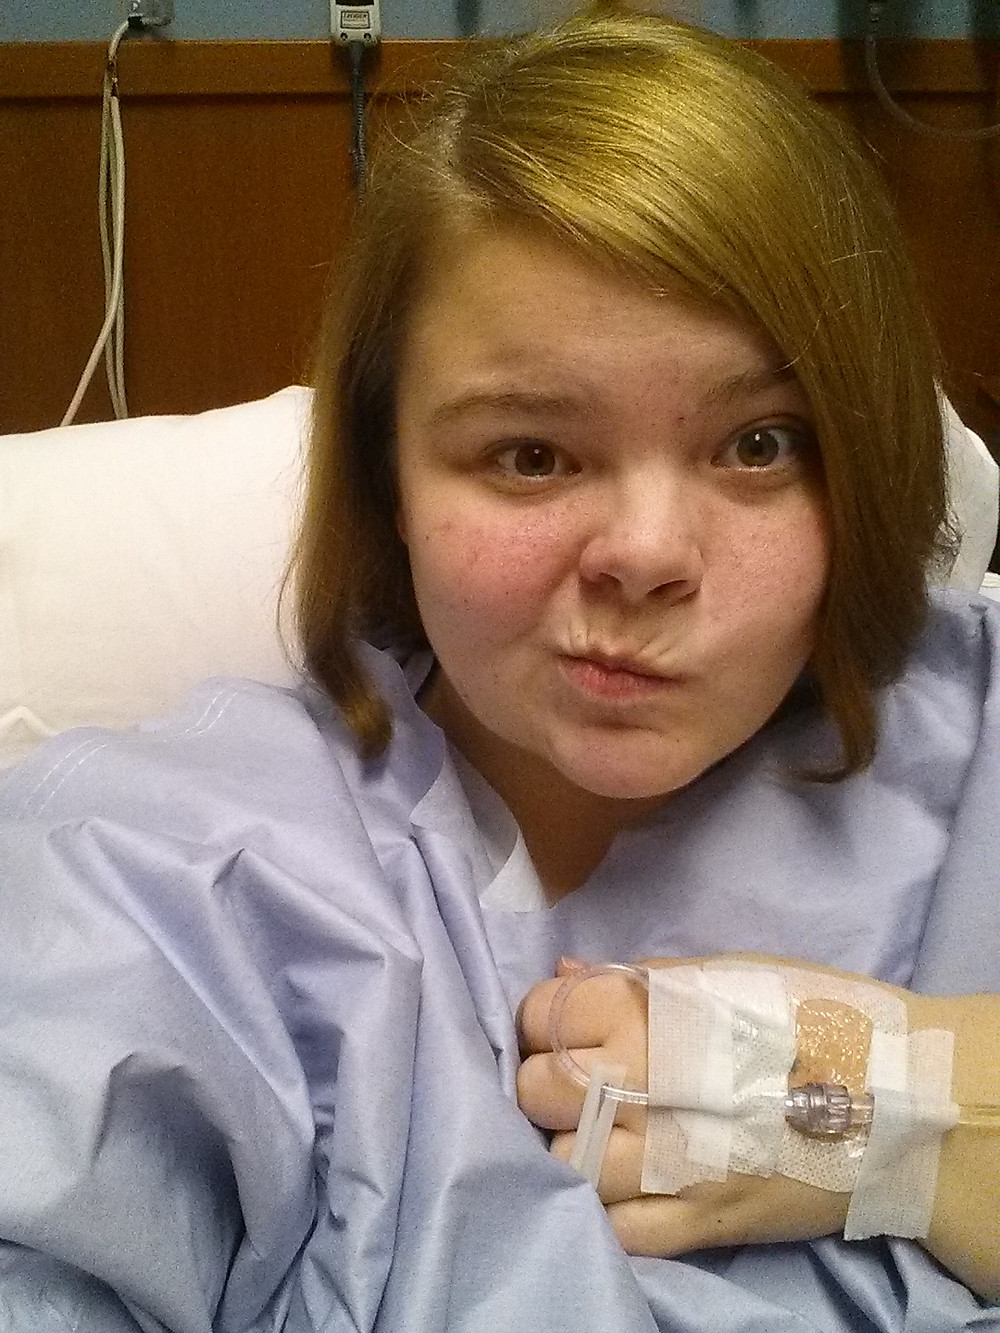 Hospital selfie showing IV in hand.